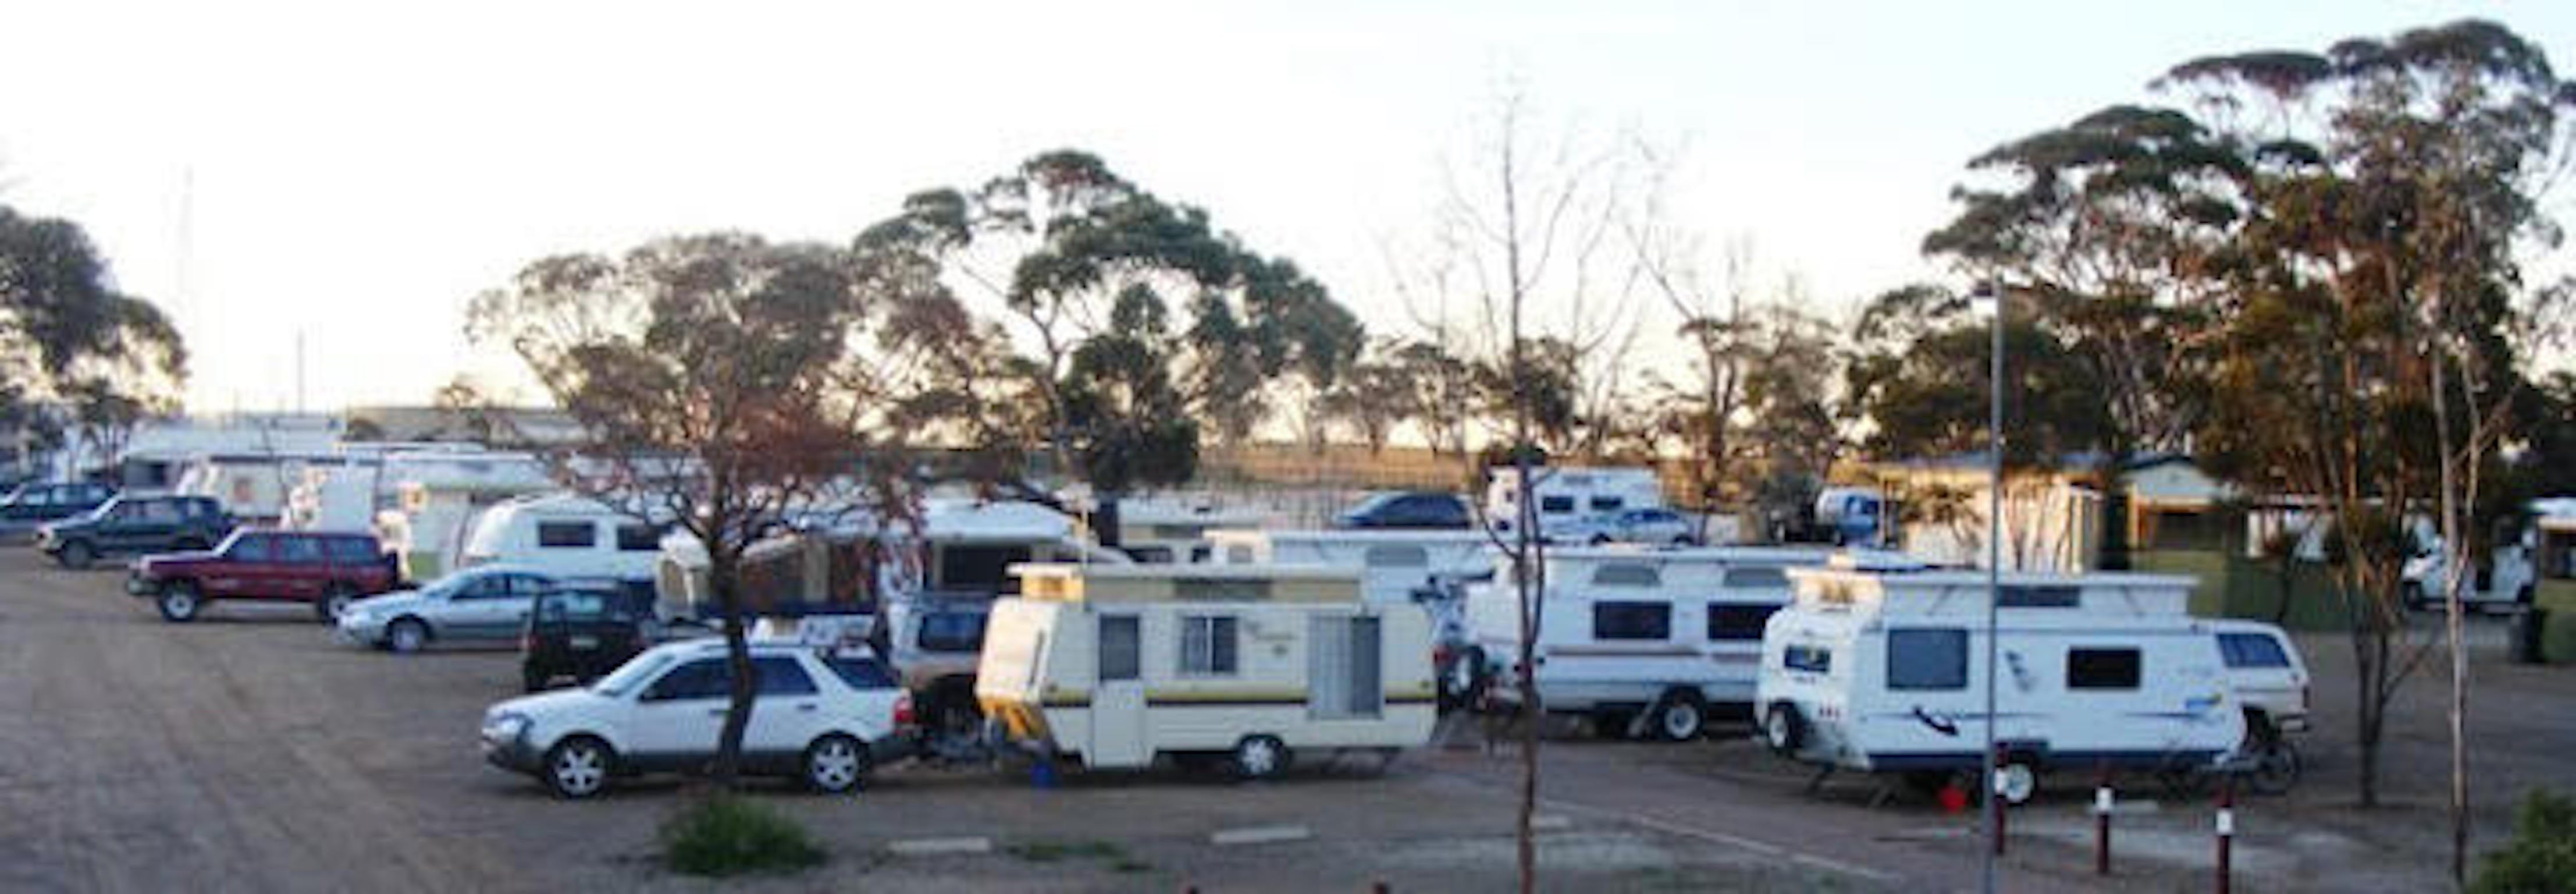 Woomera Traveller's Village and Caravan Park - Carnarvon Accommodation